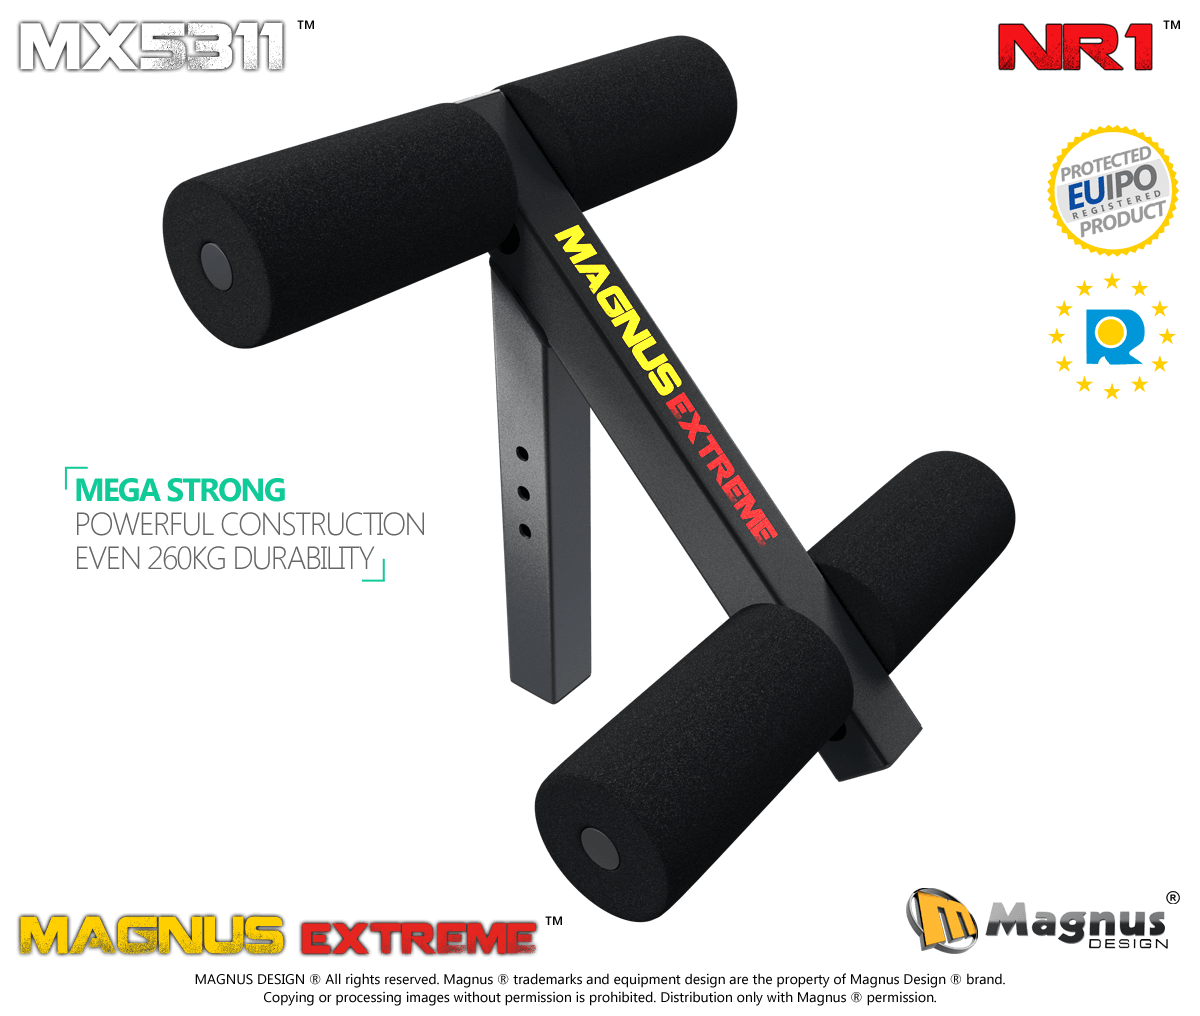 Leg lock down for abs muscles training Magnus MX5311